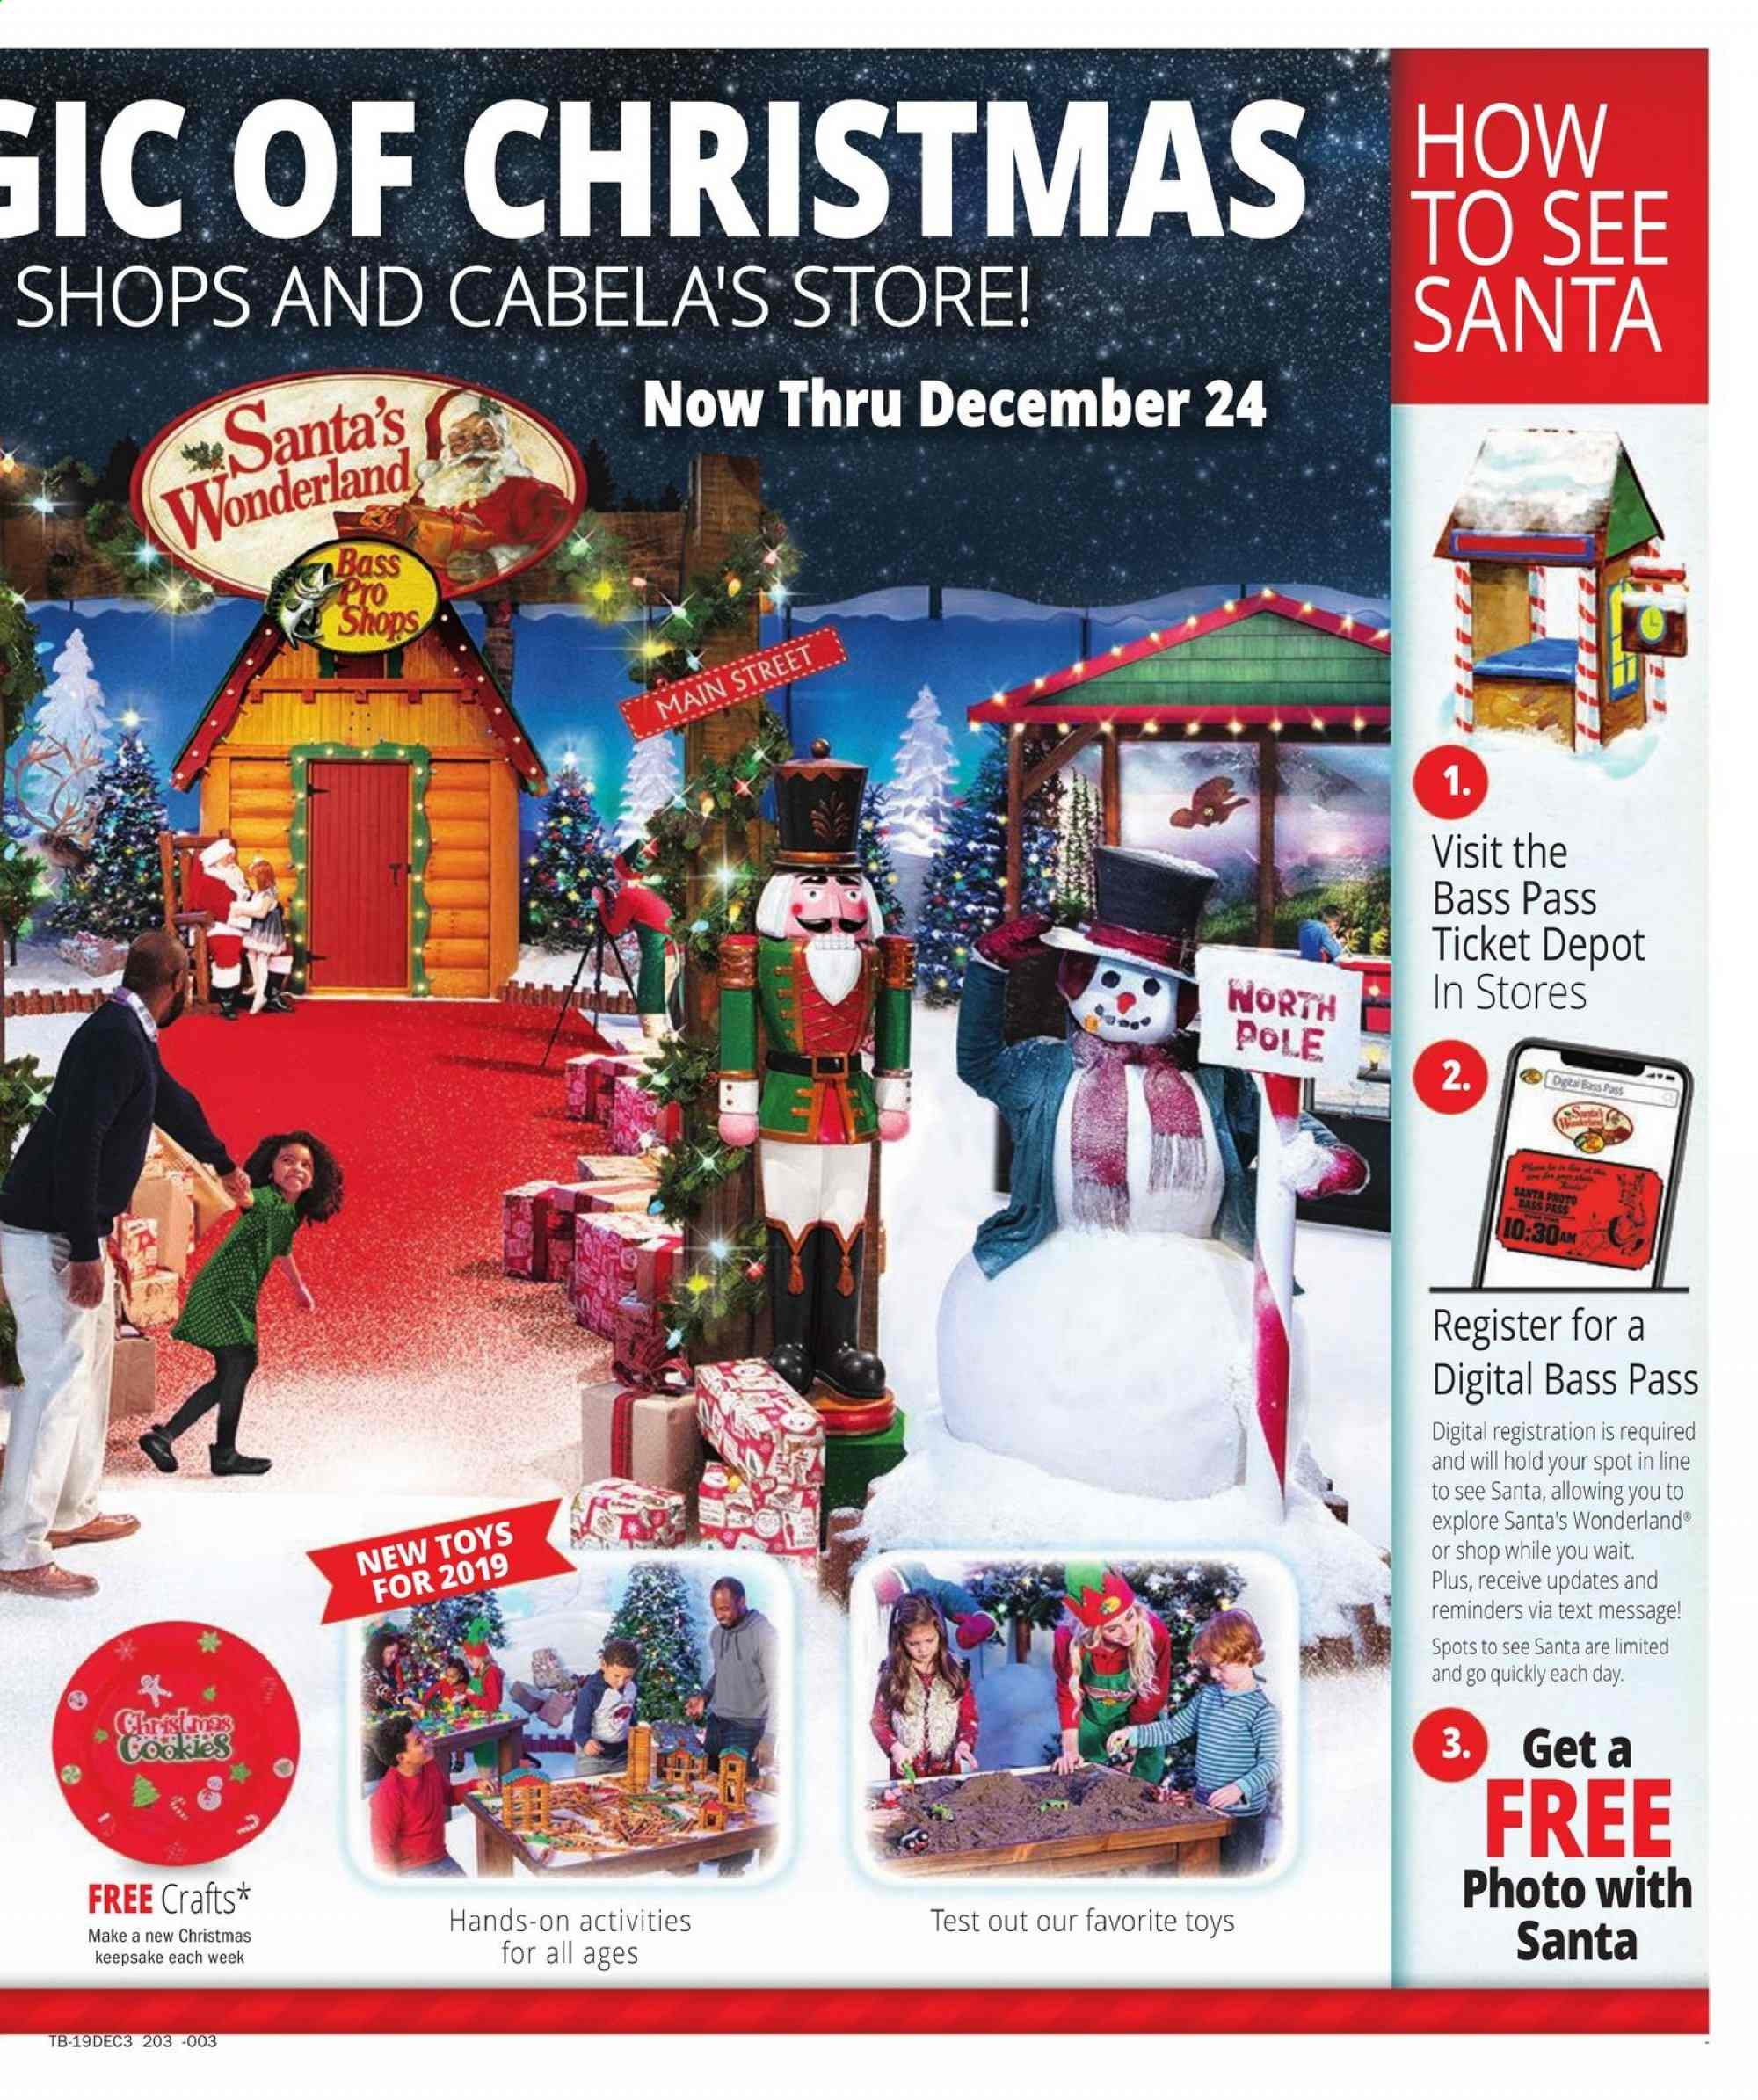 Cabelas Acworth Hours Christmas Day 2020 Cabela's flyer 12.15.2019   12.24.2019 | Weekly Ads